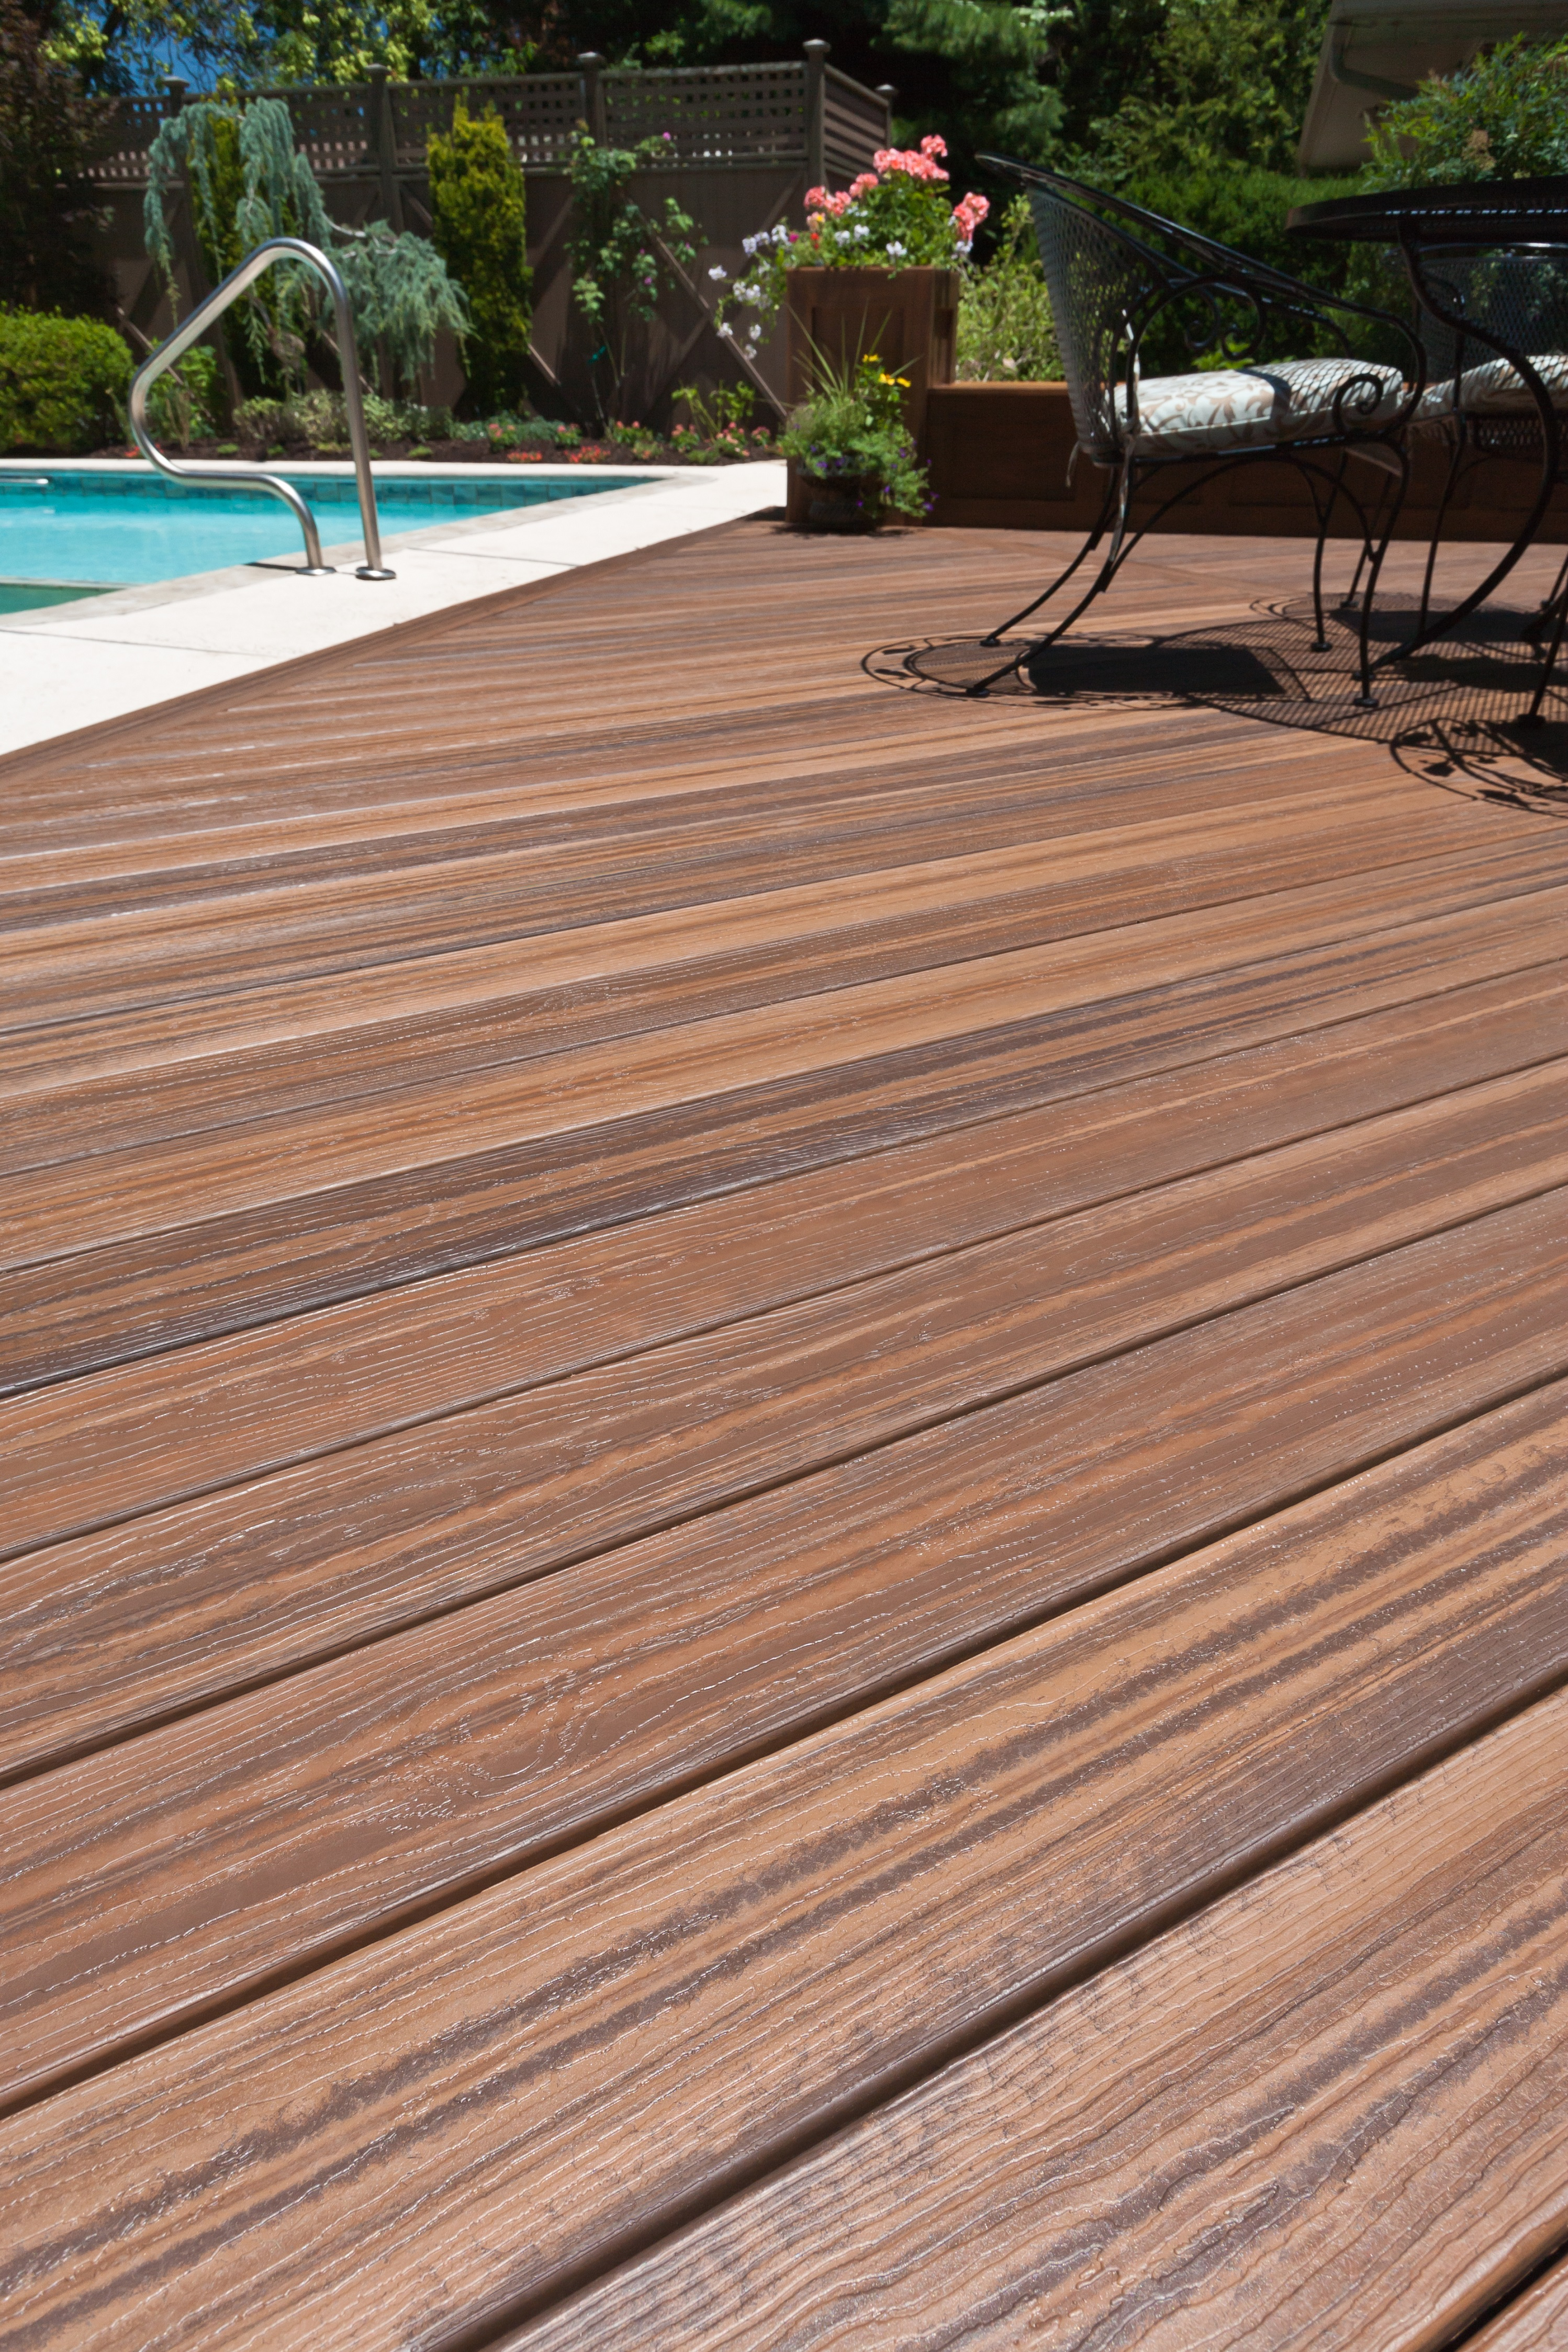 Tamko Decking East Side Lumberyard Supply Co Inc intended for dimensions 2996 X 4493